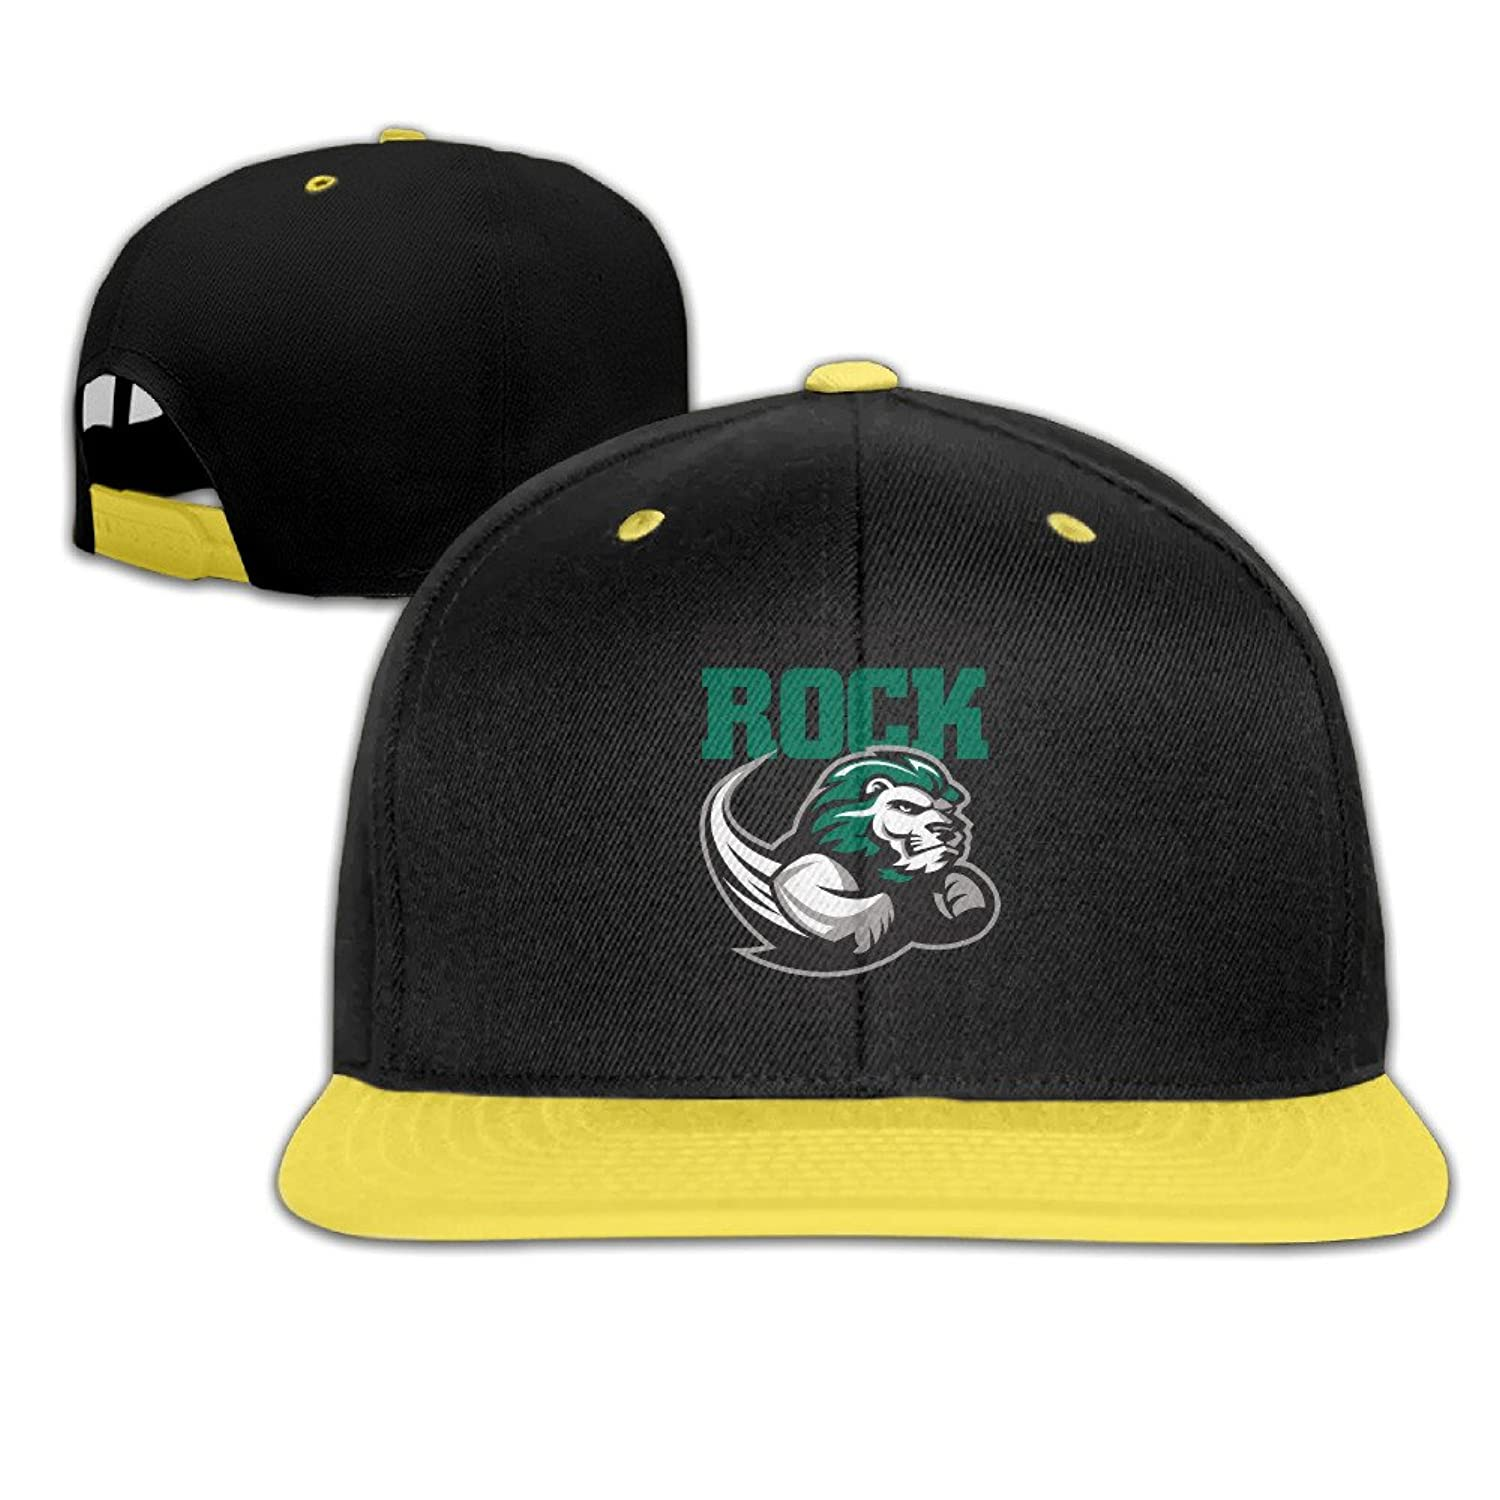 Kids Design Baseball Slippery Rock University Logo 1 Adjustable Snapback Cap